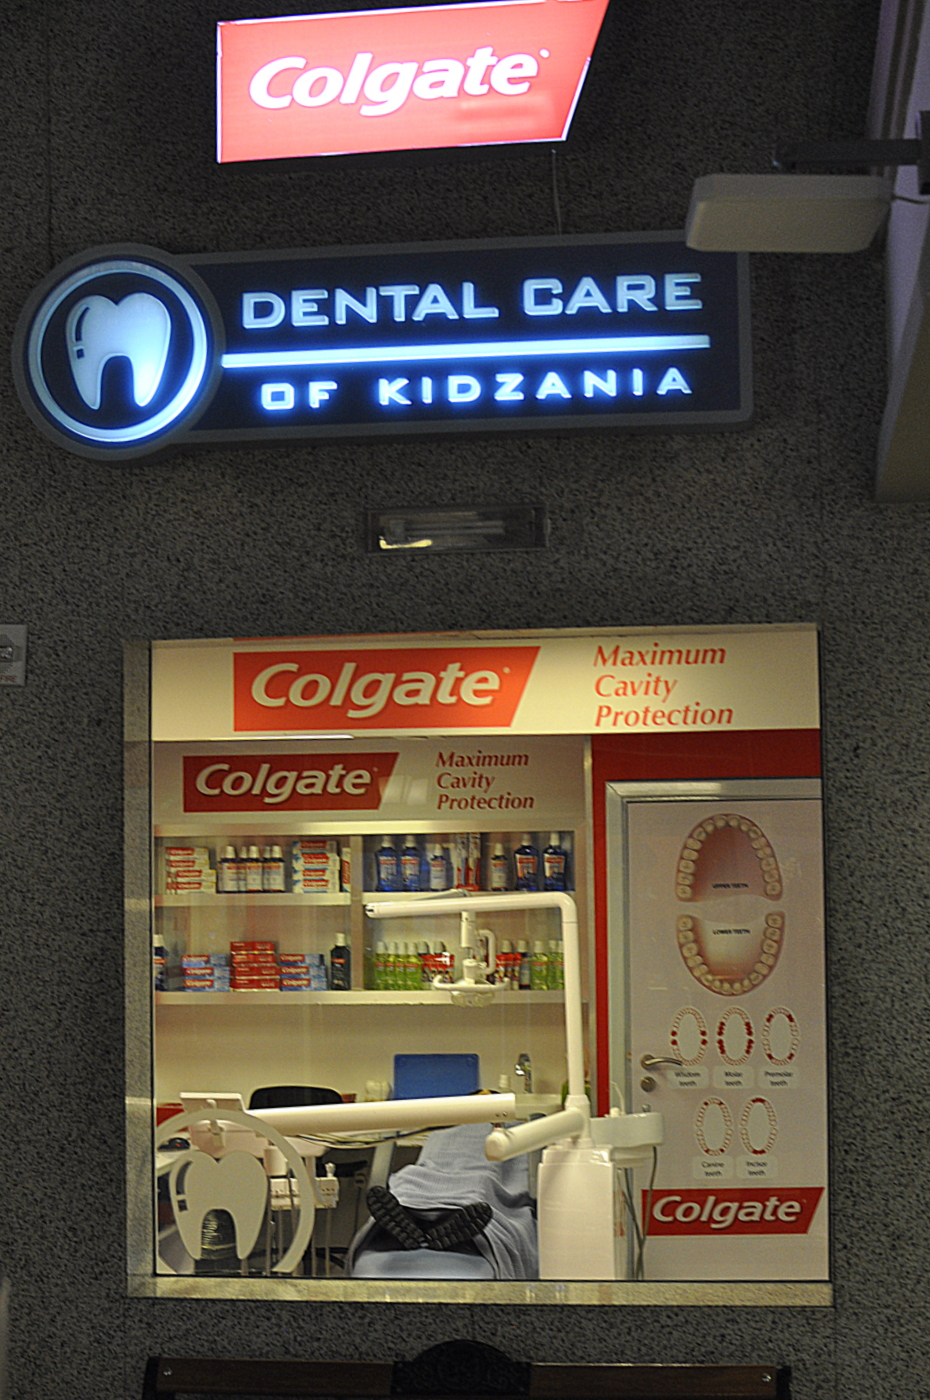 KidZania - Dubai - a child-sized city run by kids, for kids - dentist